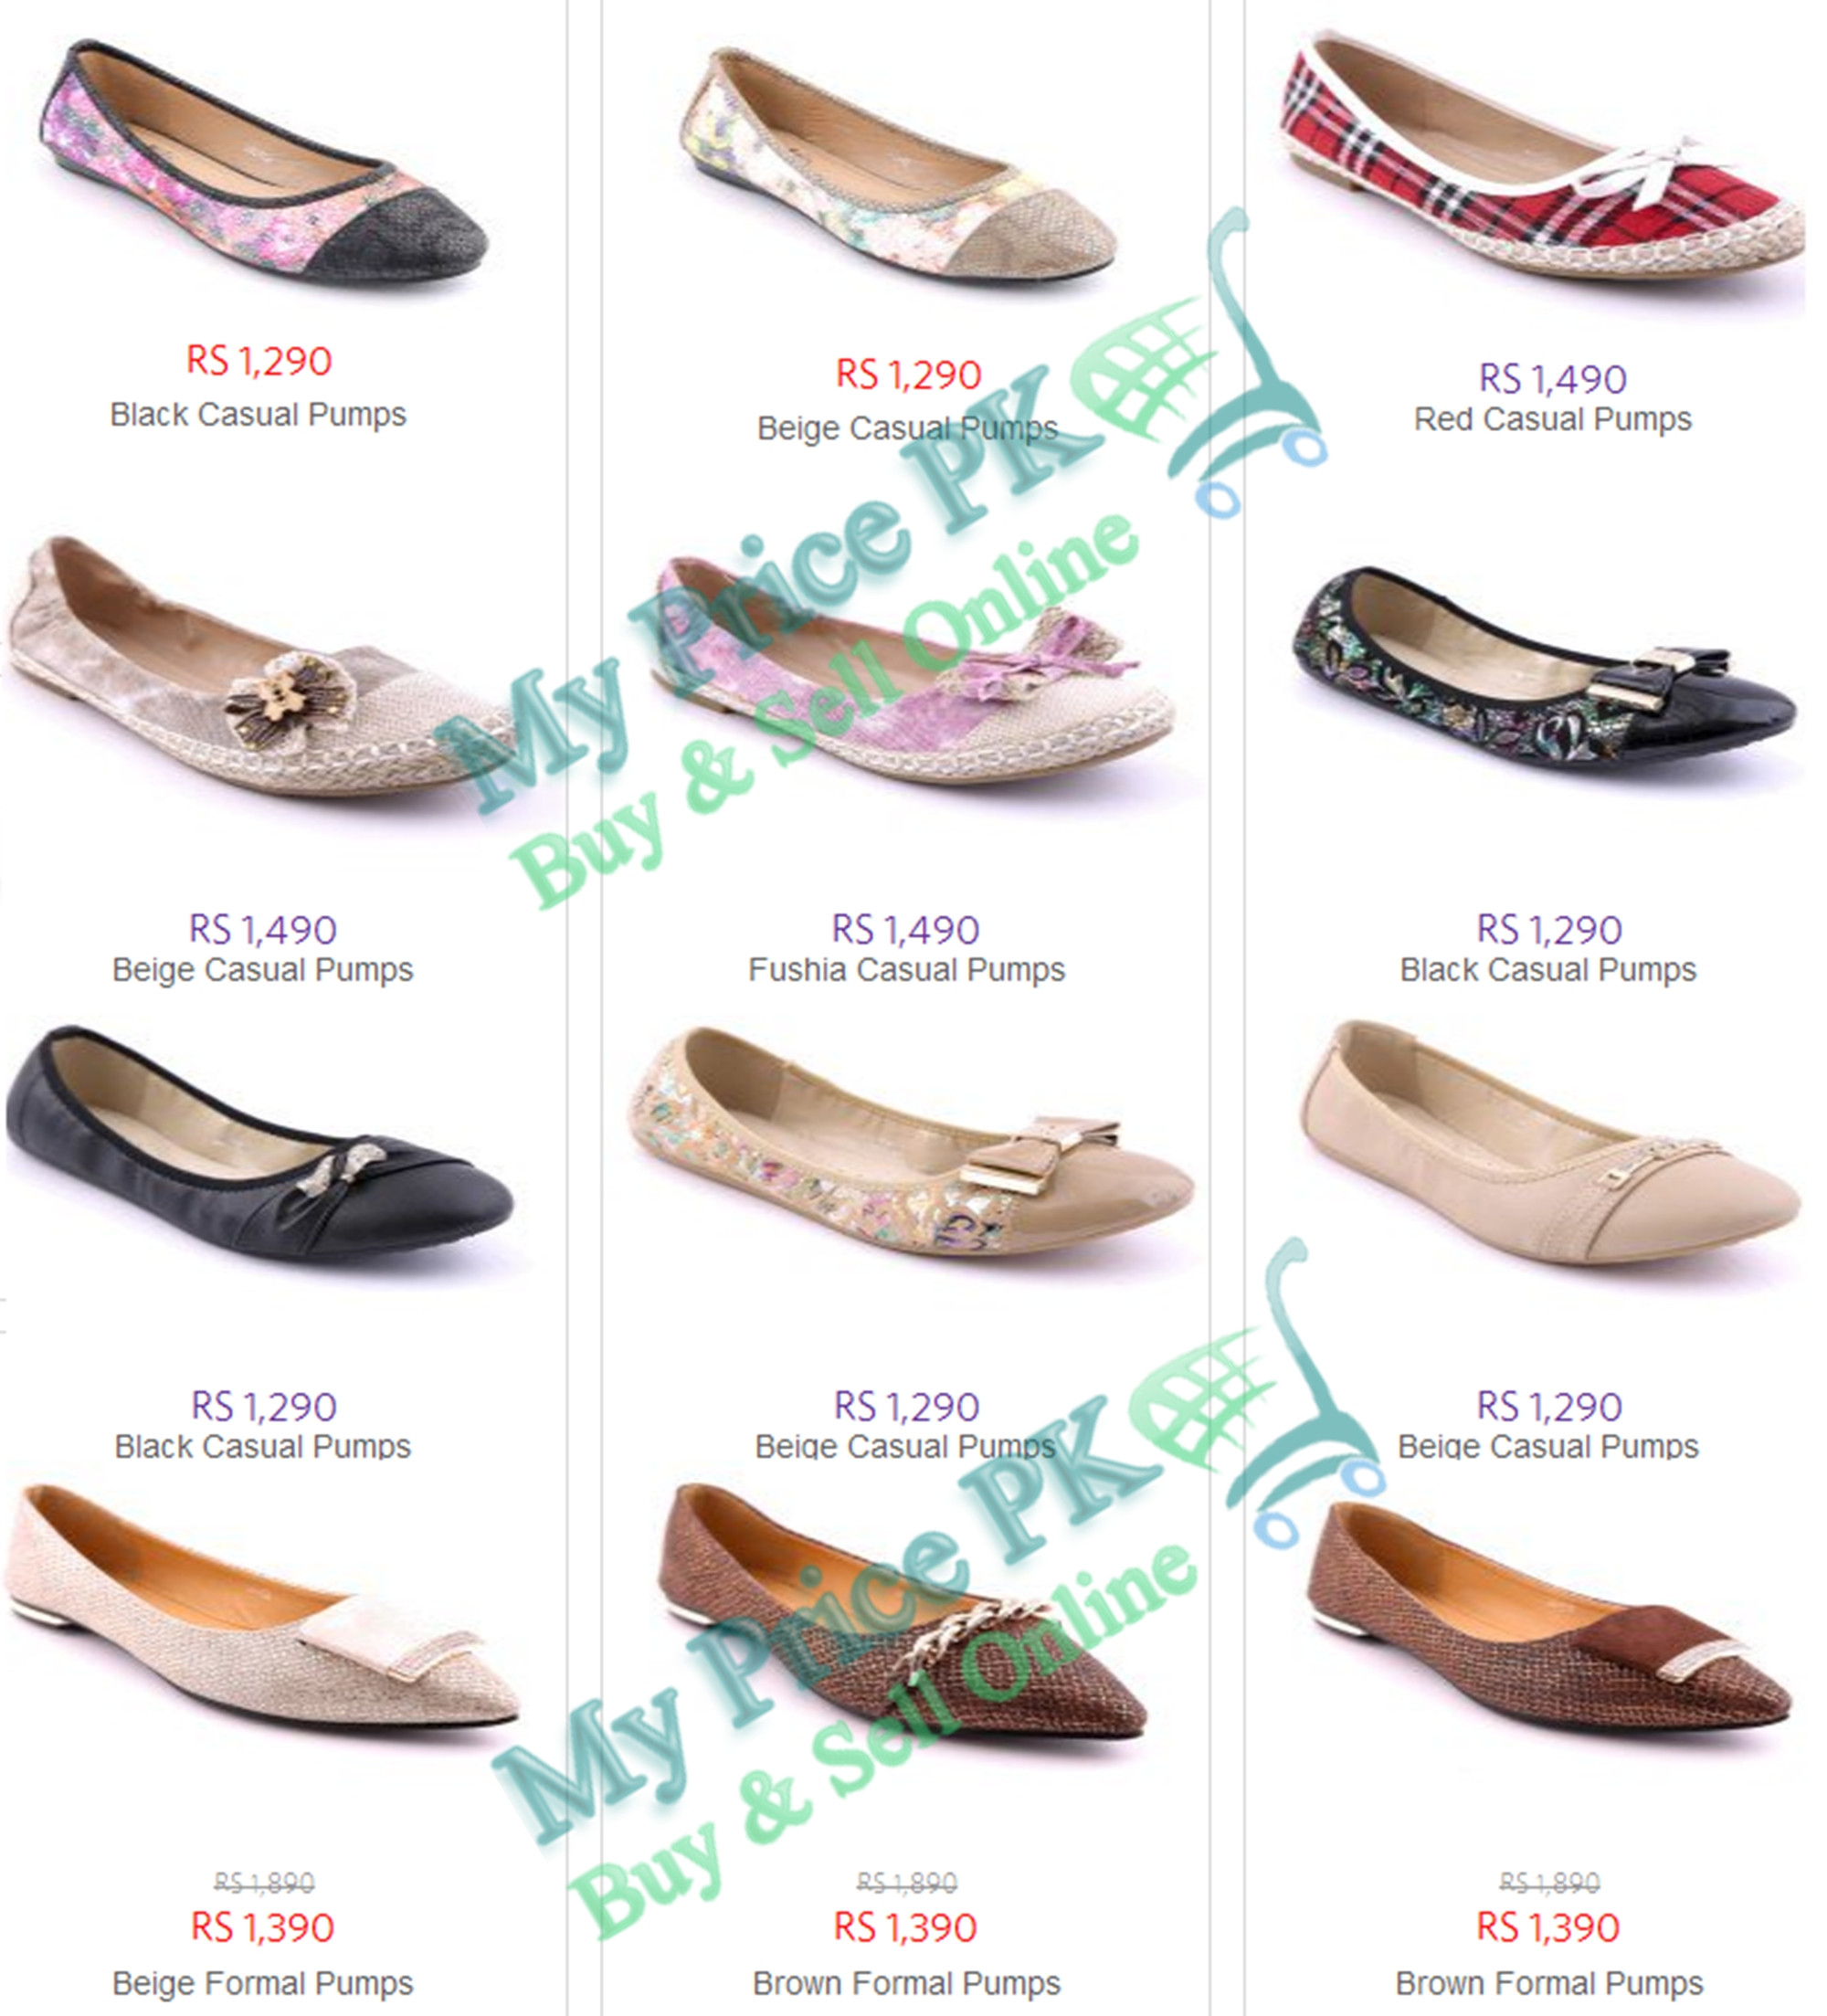 Stylo Shoes Ladies New Arrival For Winter 2021 Pumps Designs Price In Pakistan